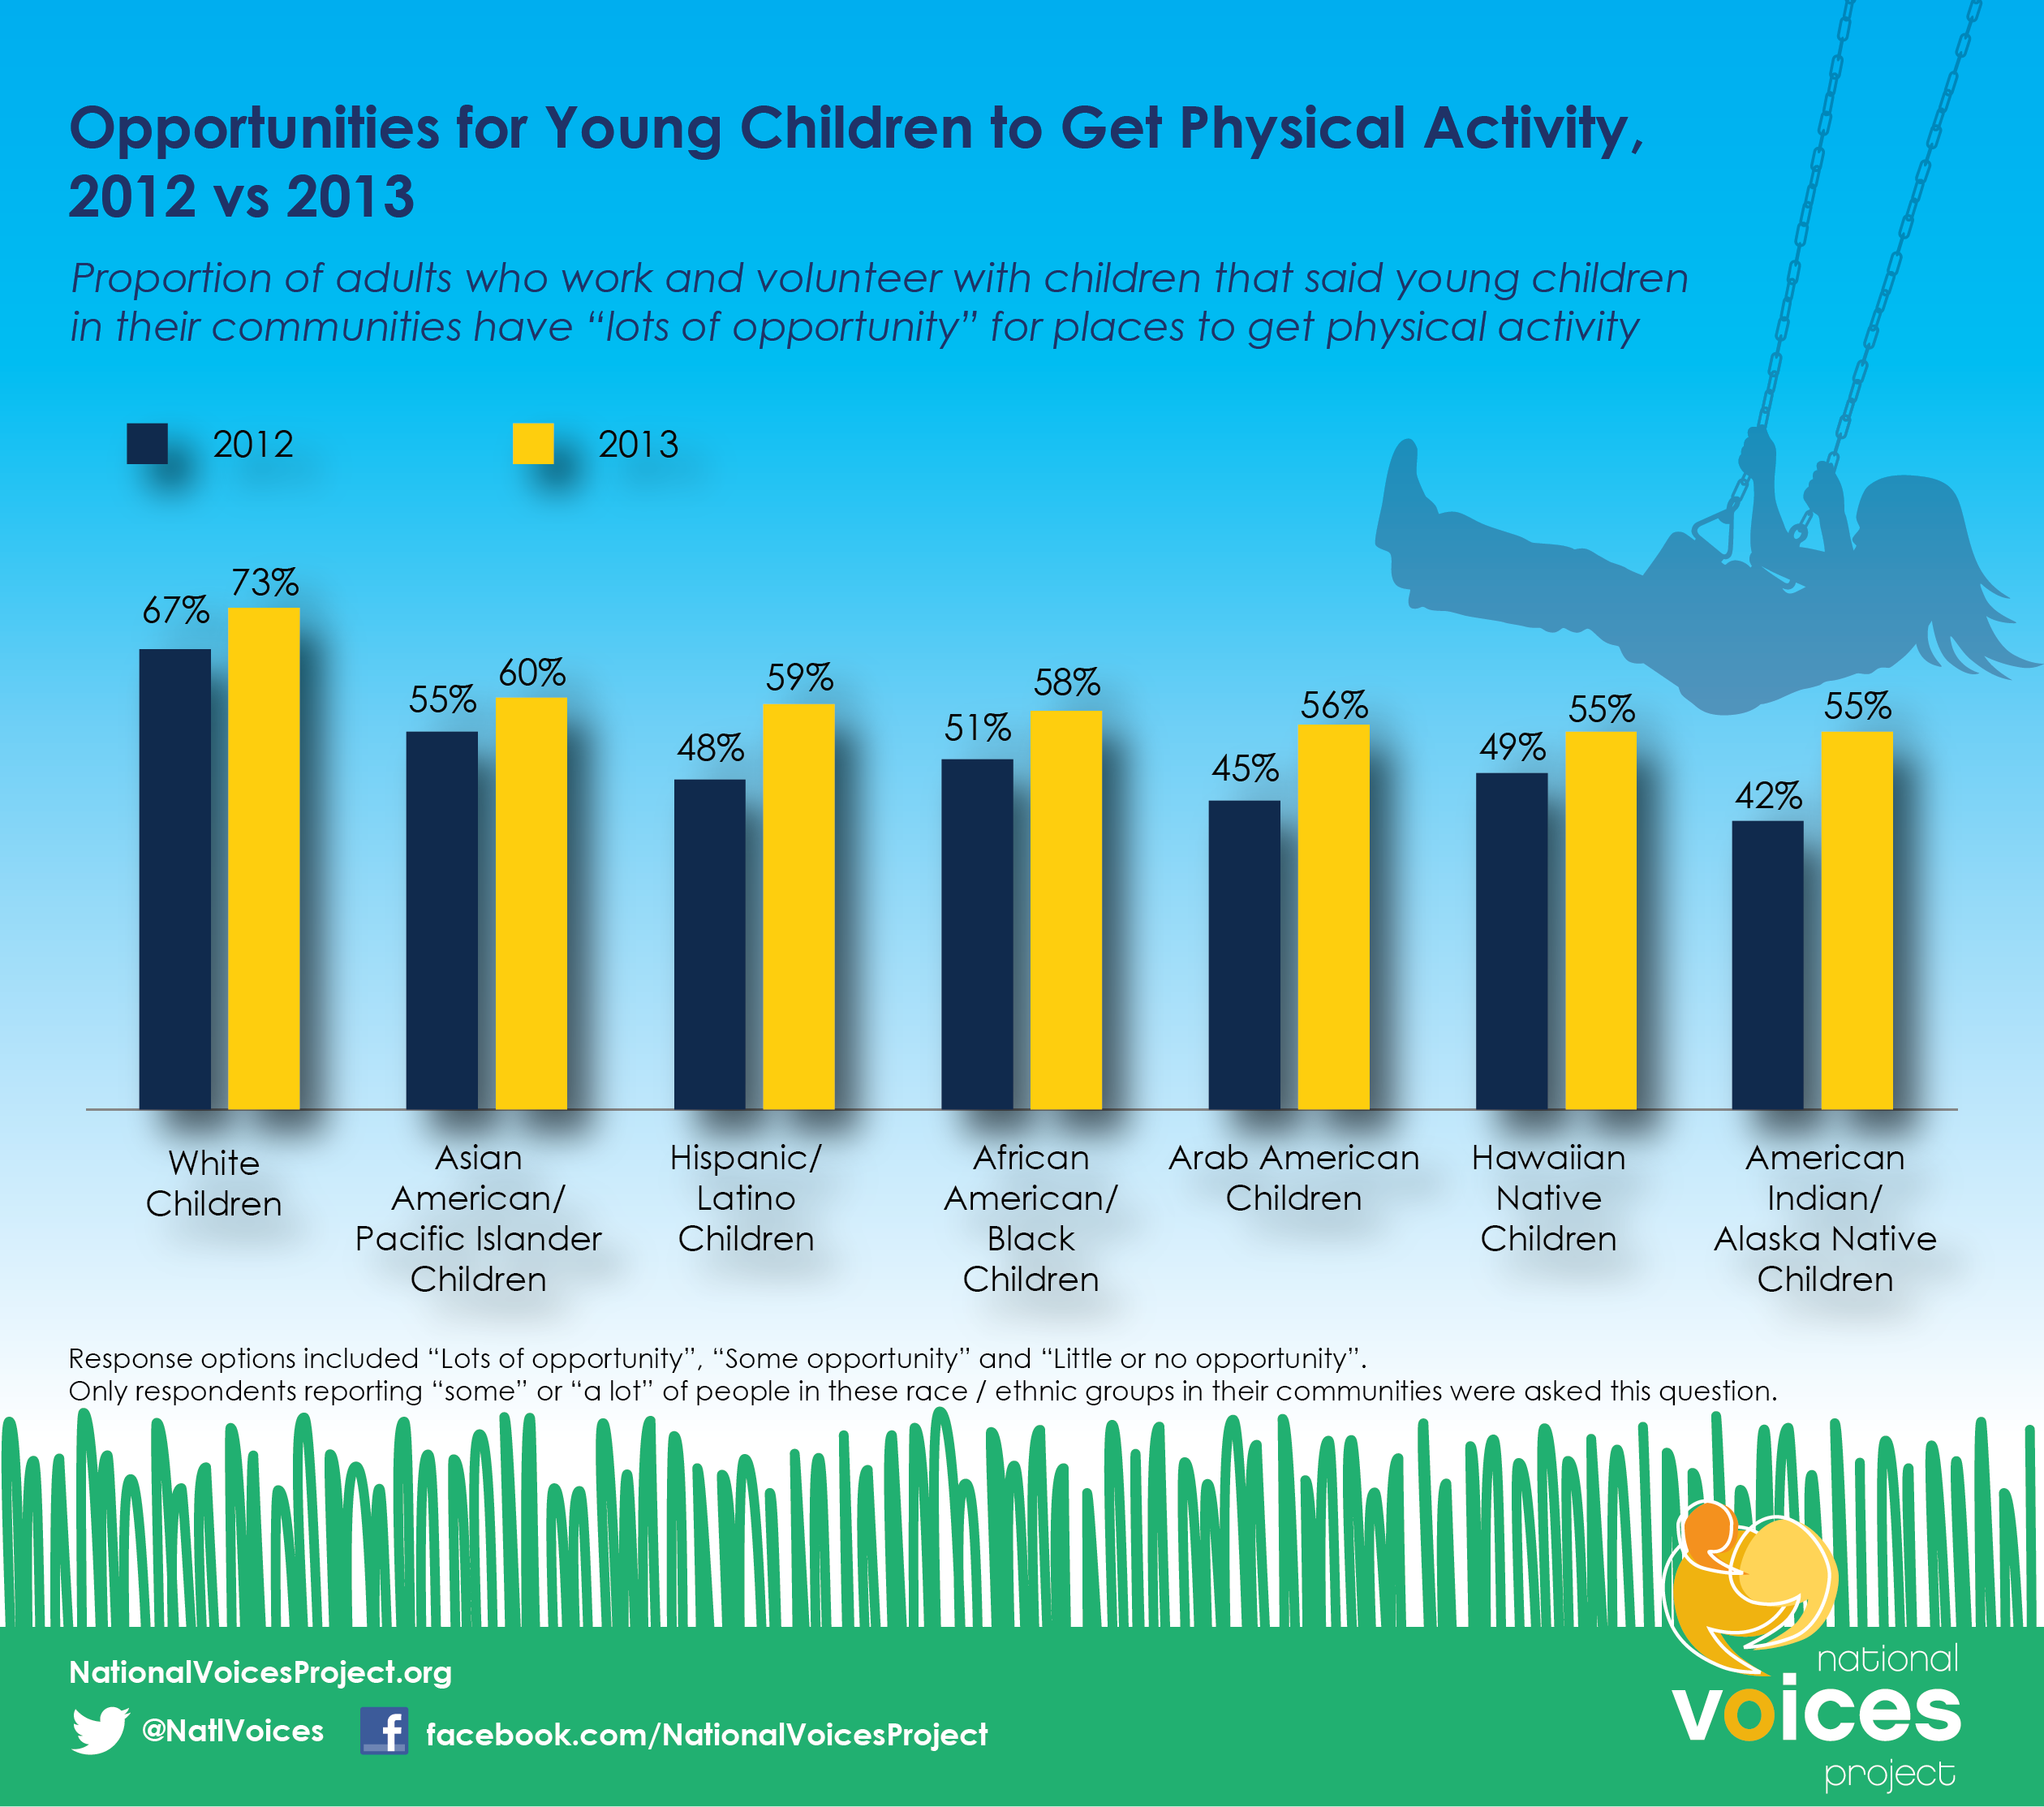 Adults think kids have more chances to be active